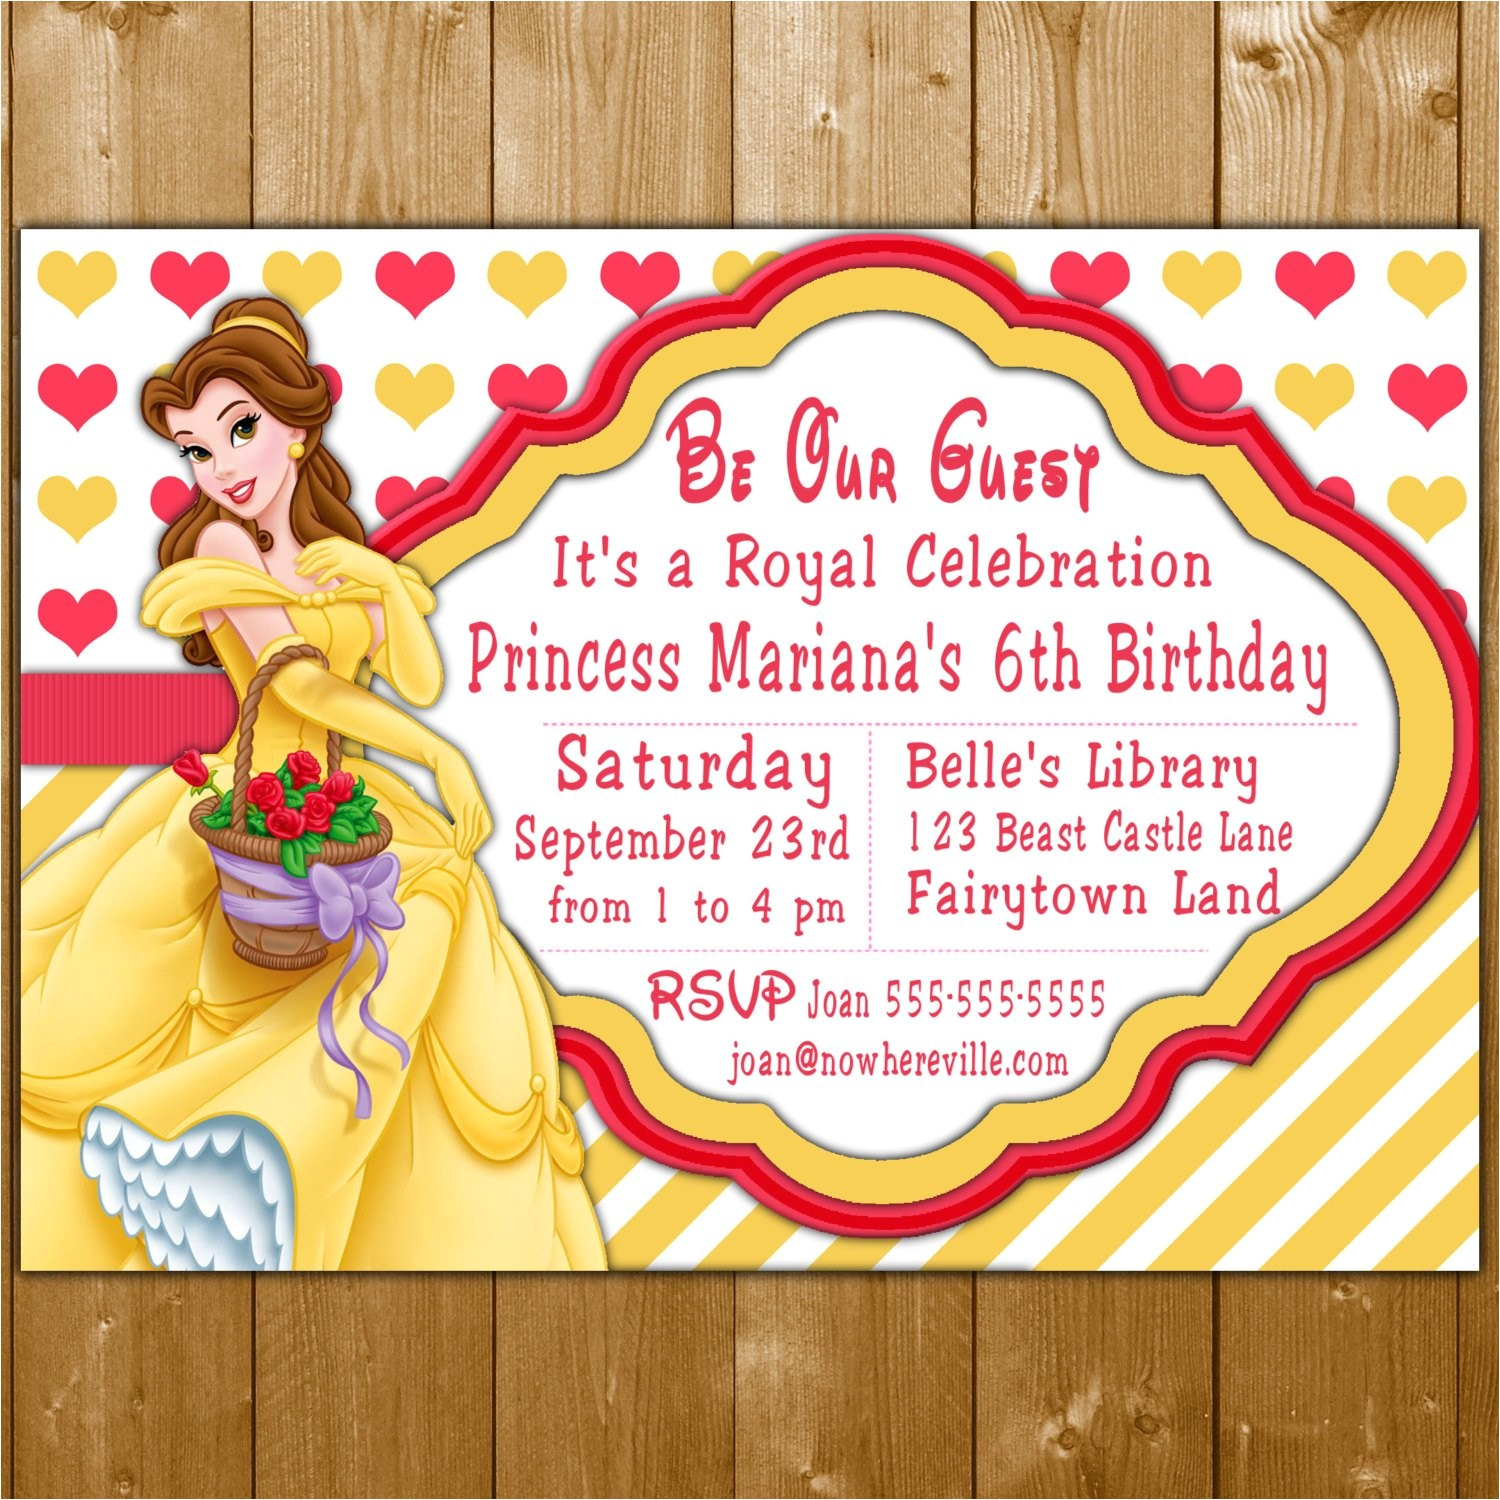 belle invitation disney princess belle party invitations belle invite for a girl